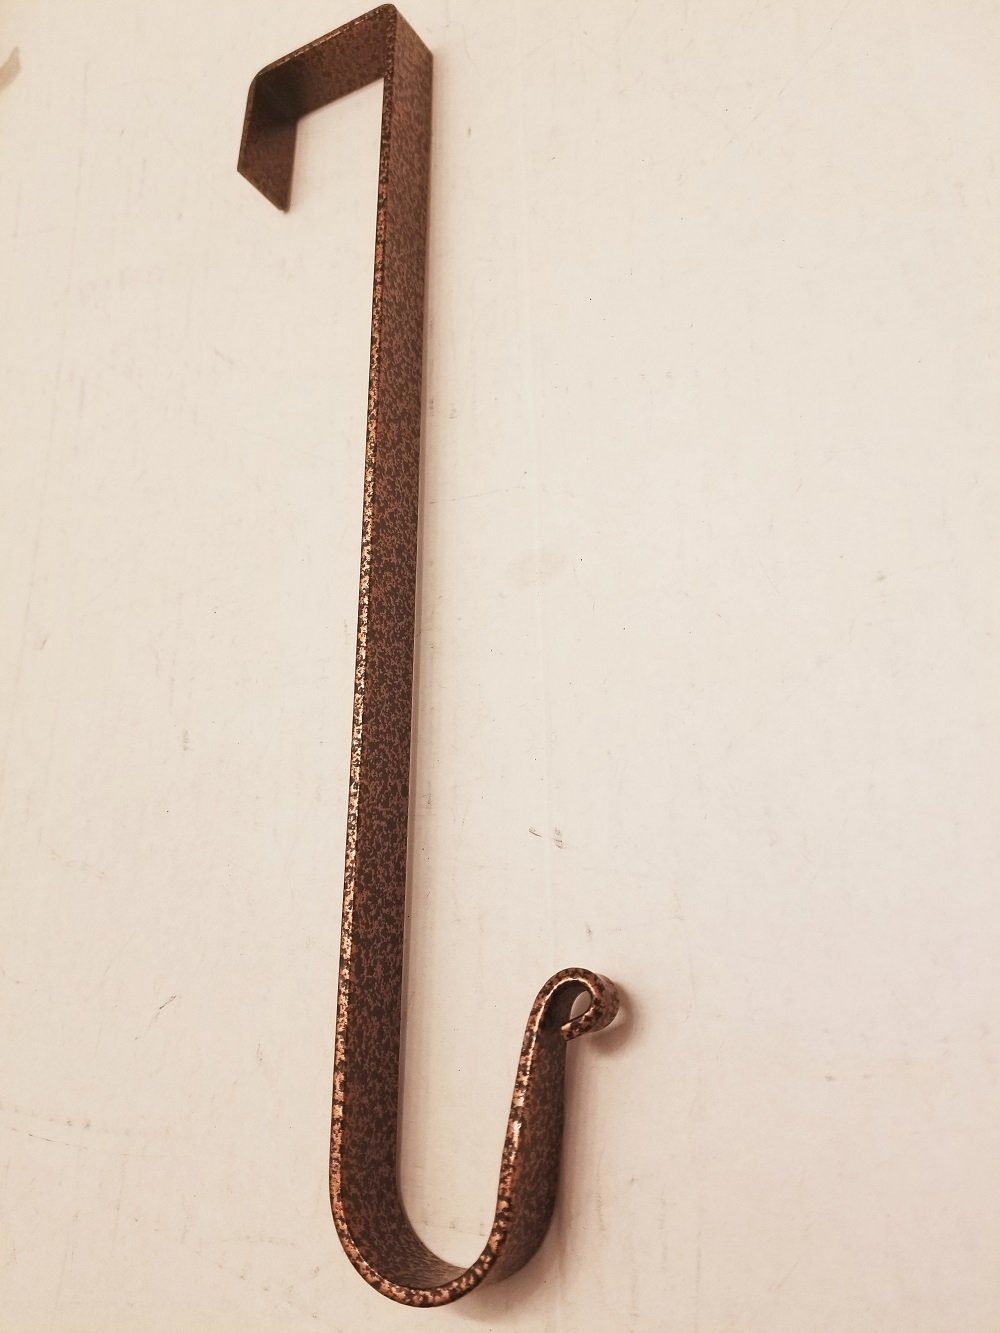 Wrought Iron Wreath Hanger Powder Coated in Aged Bronze - Hand Made By Amish of Lancaster County PA.